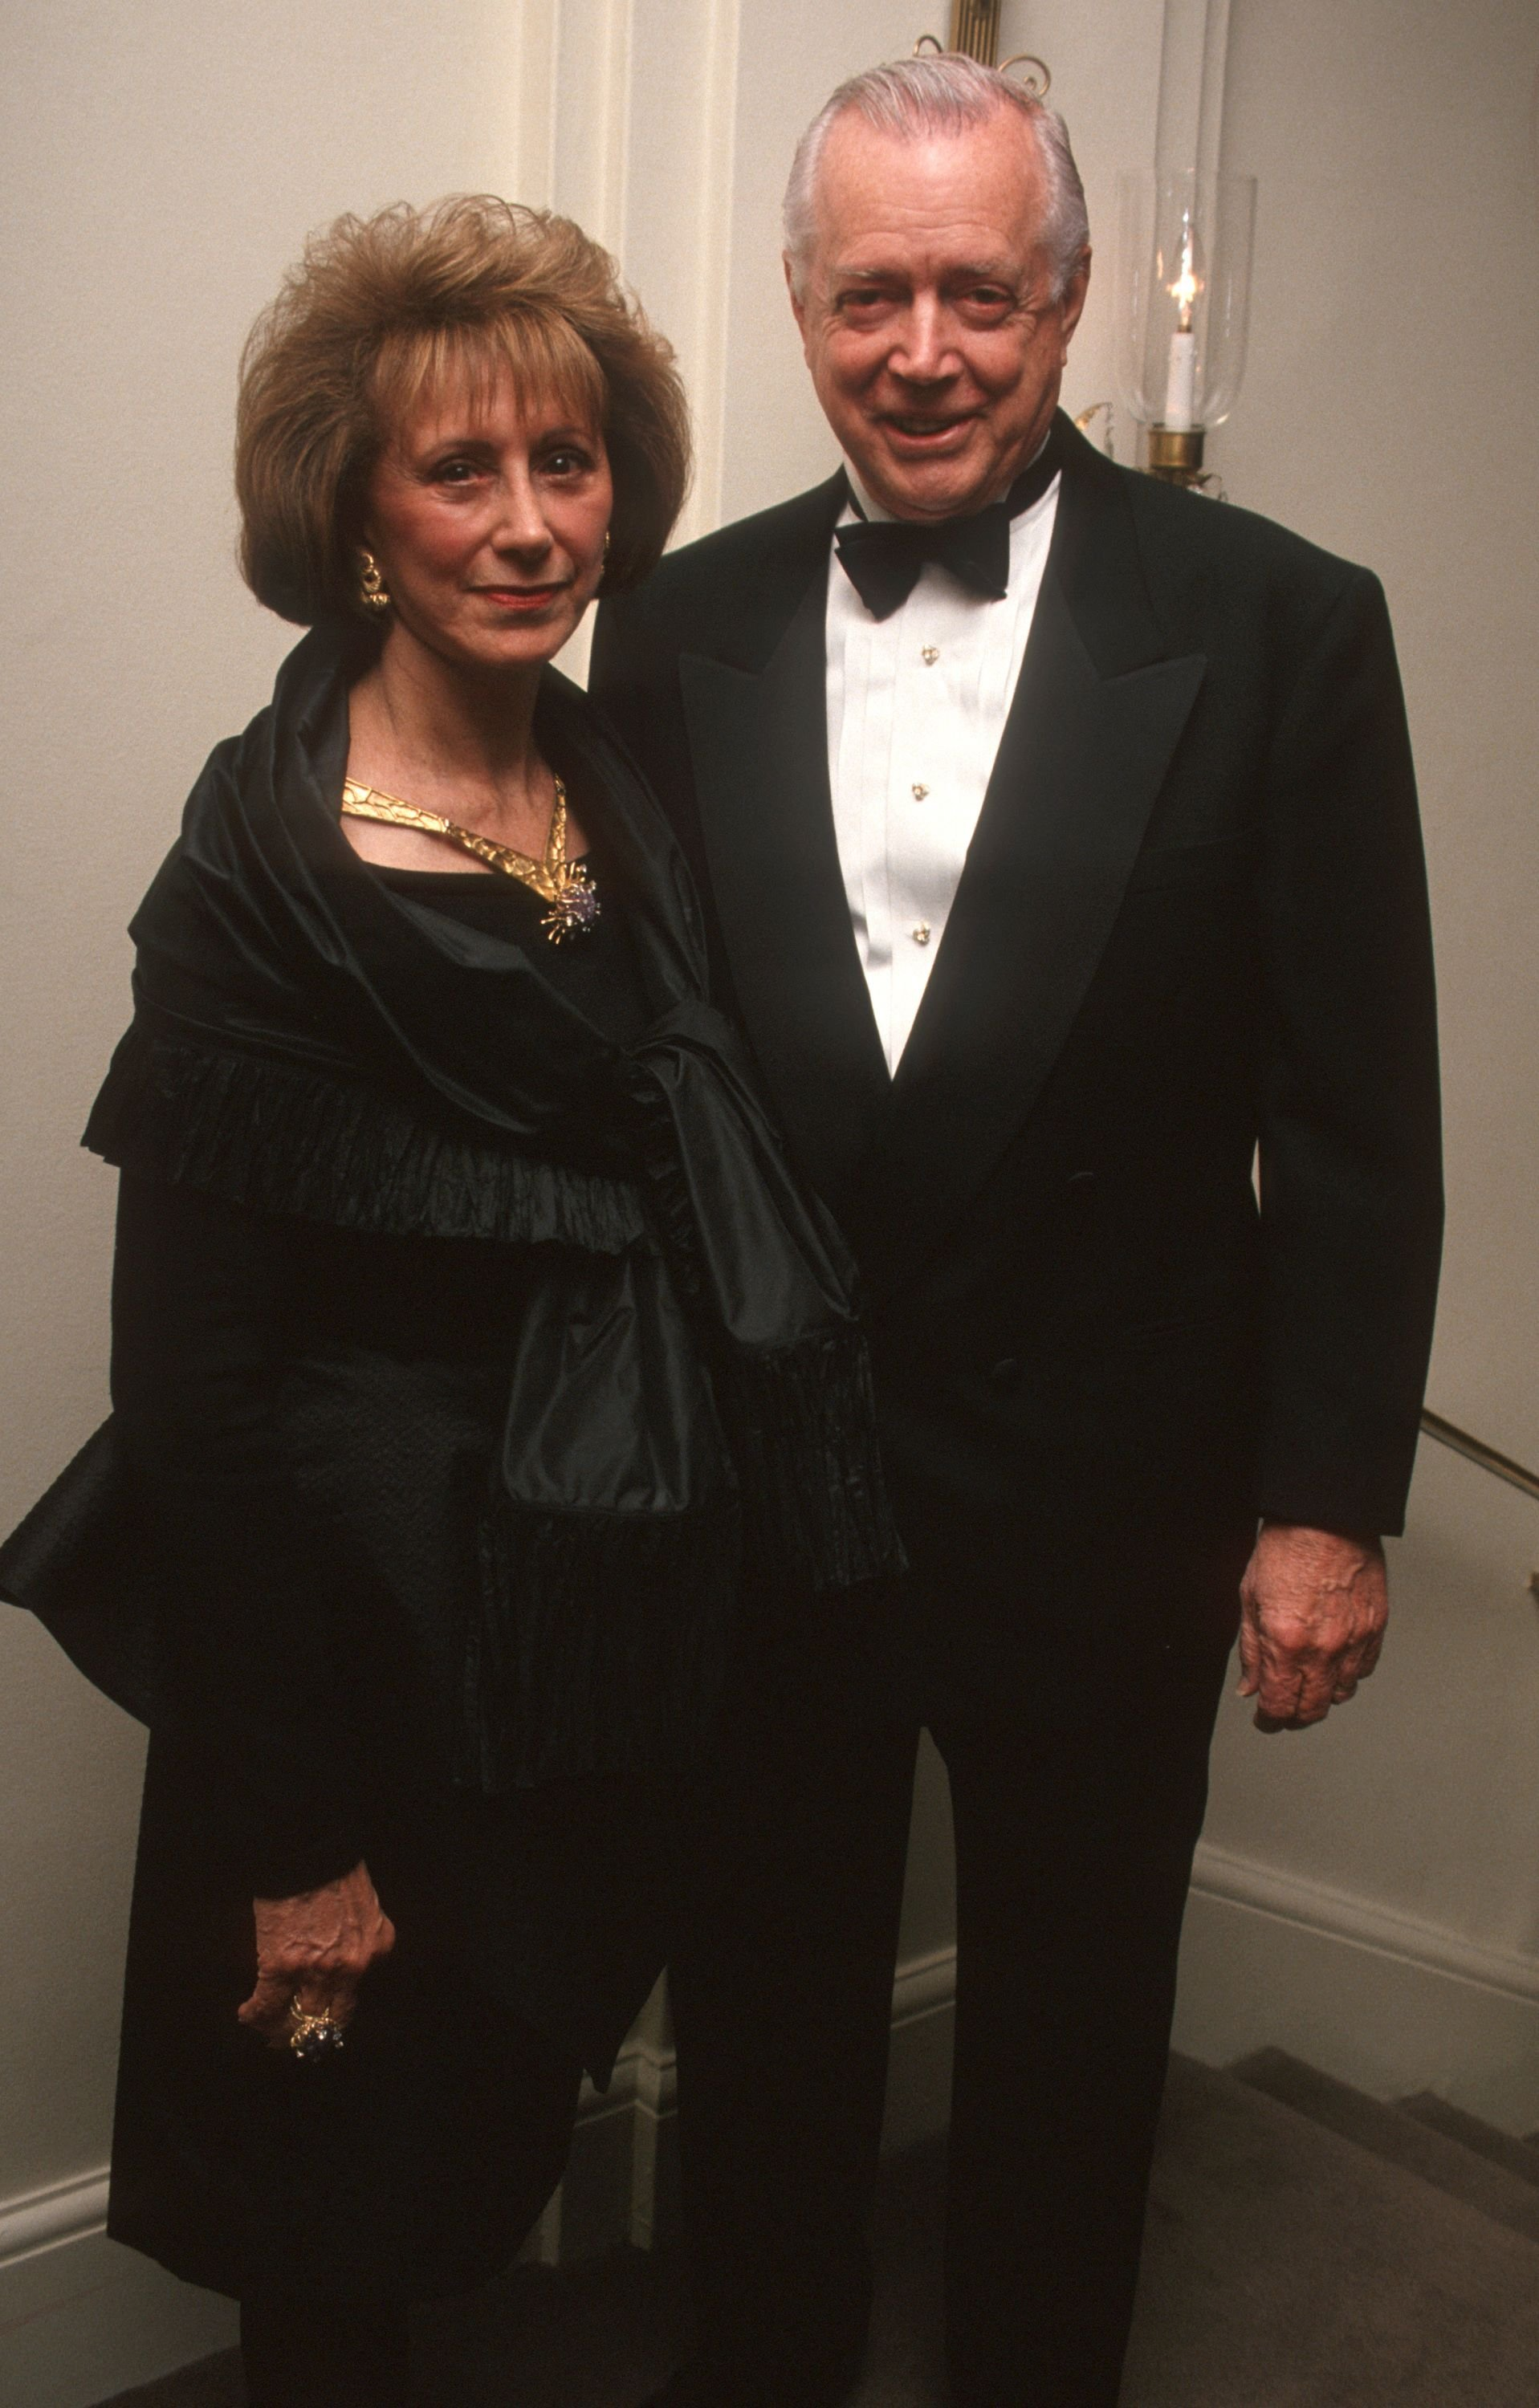 Ruth Downs and Hugh Downs at the CASA Honors James Burke and Daniel Burke benefit in New York   Source: Getty Images